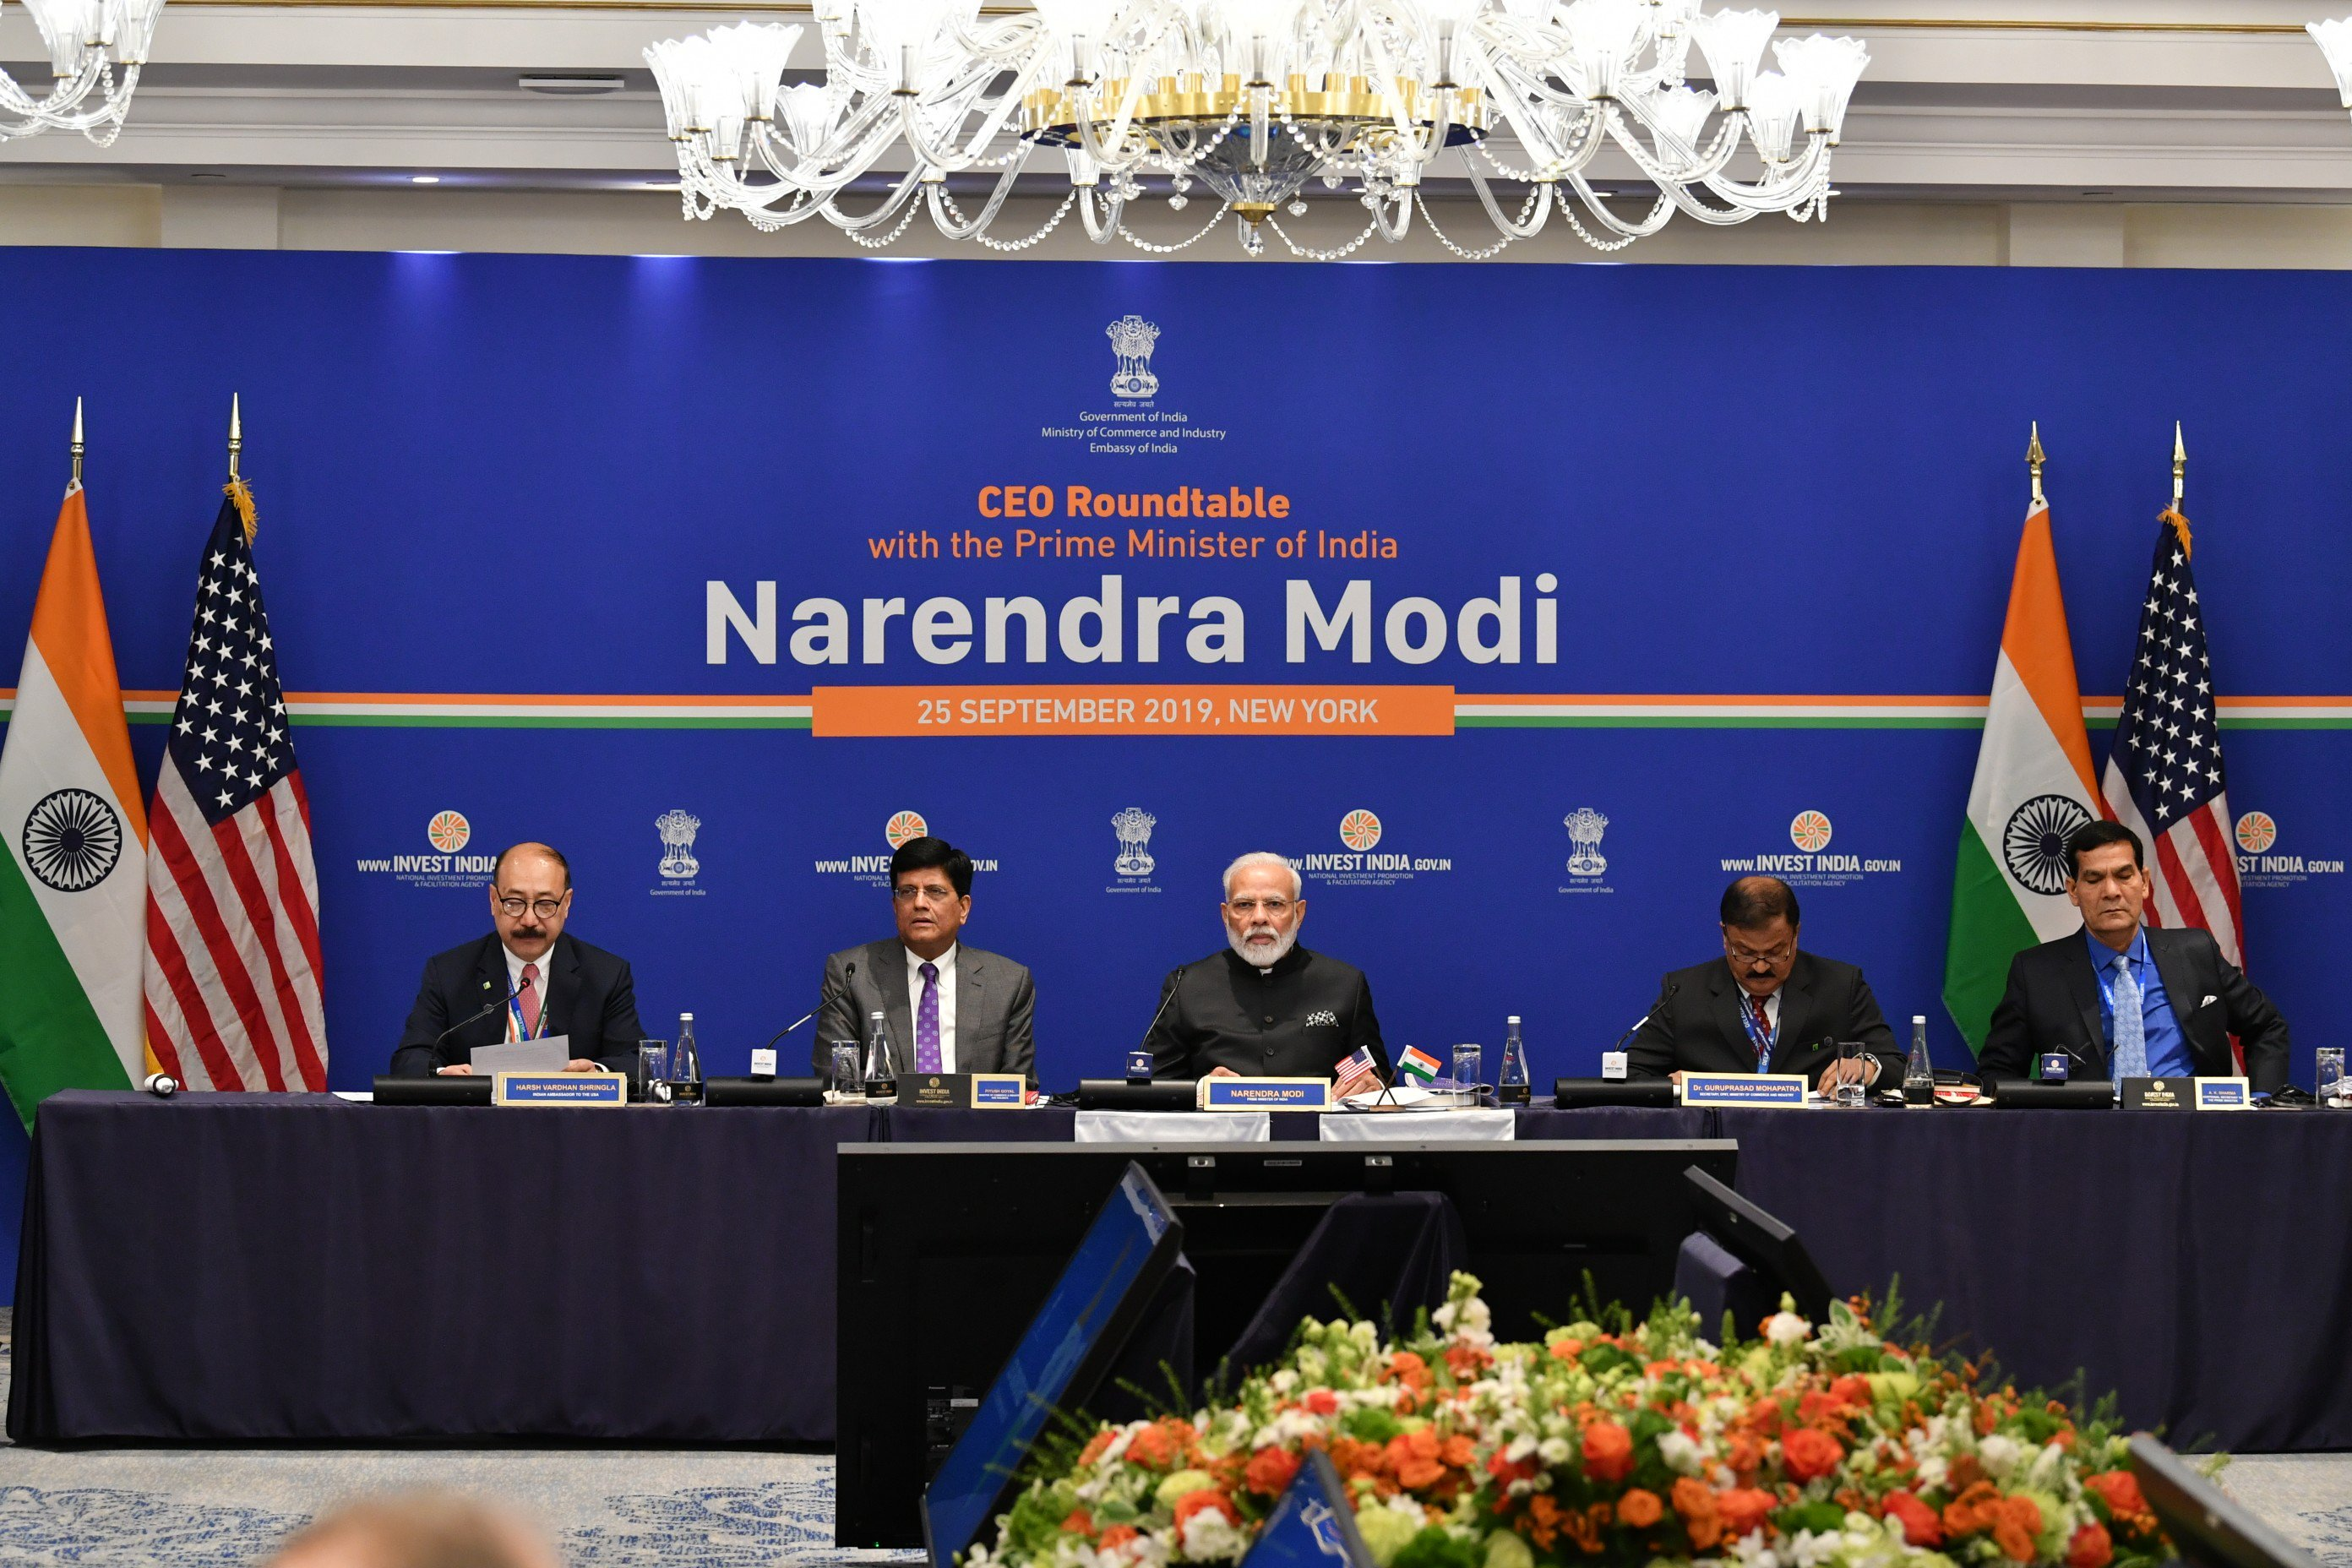 Narendra Modi and Piyush Goyal at the CEO roundtable in New York. Photo courtesy: Twitter/@PIB_India